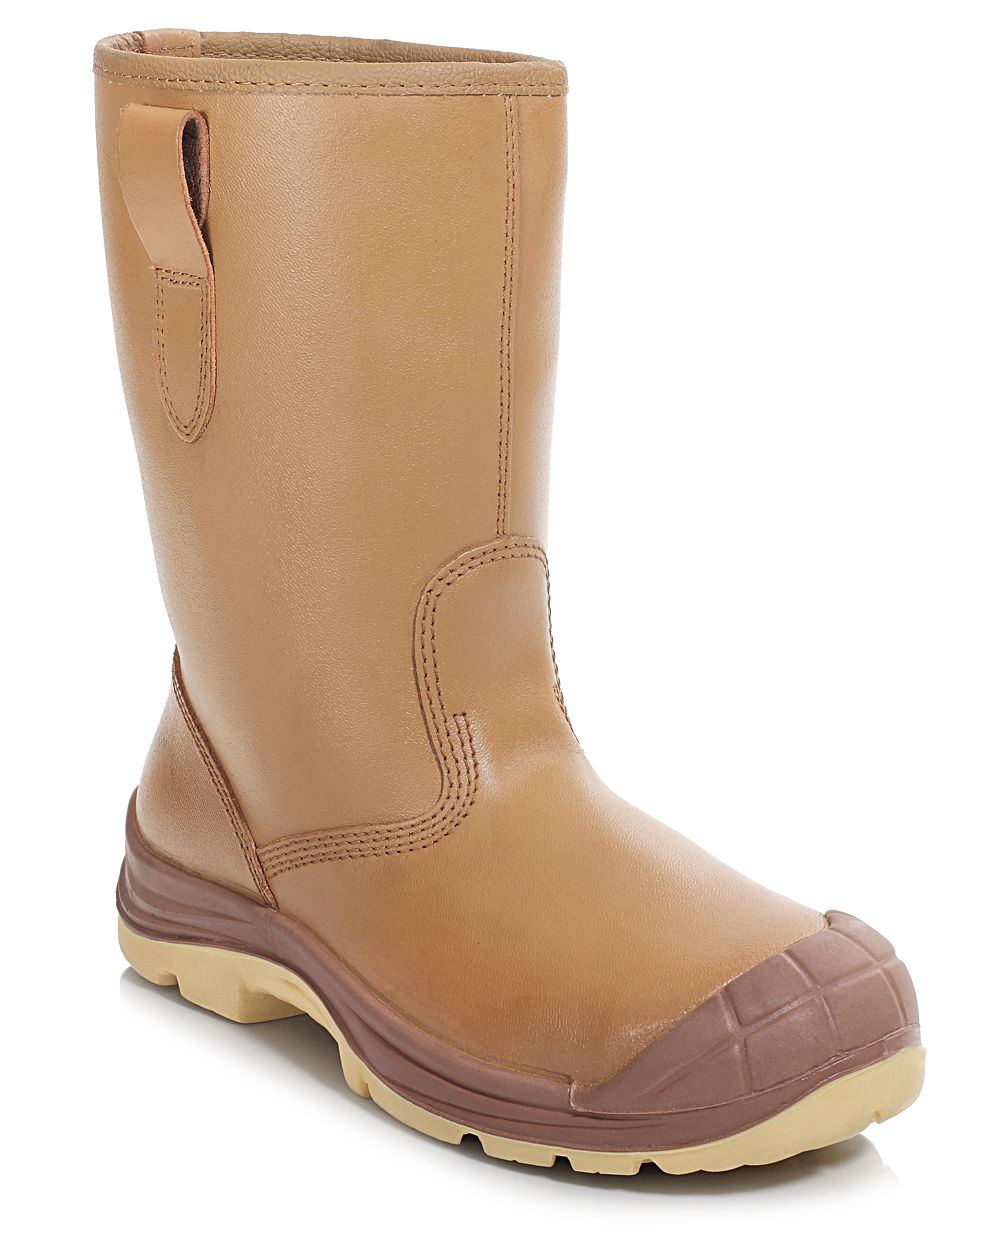 PB43C Unlined Rigger Boot